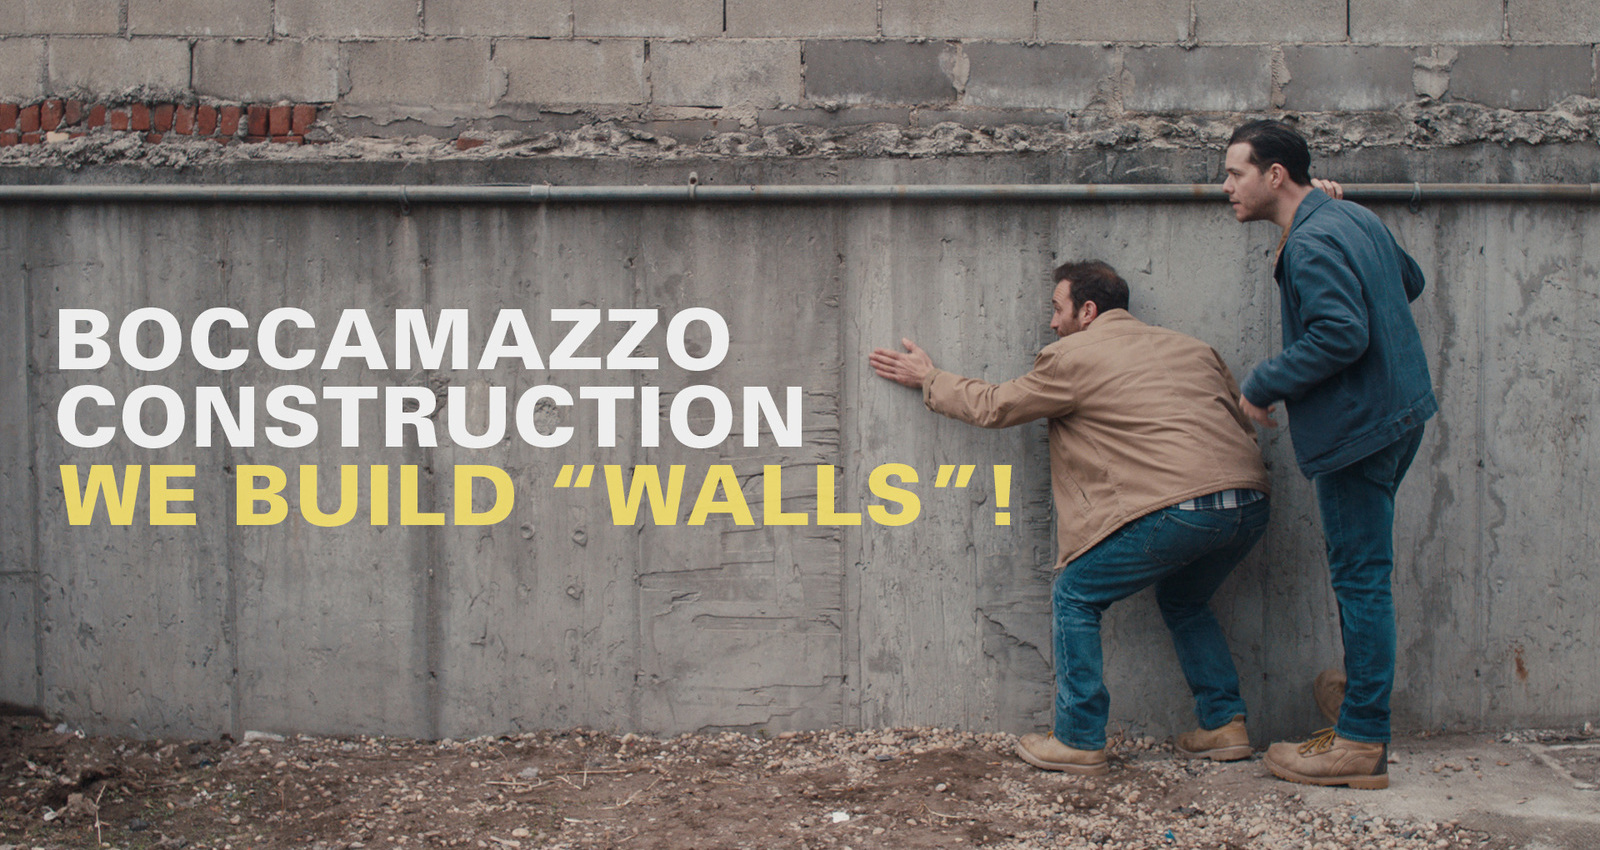 We Build Walls!